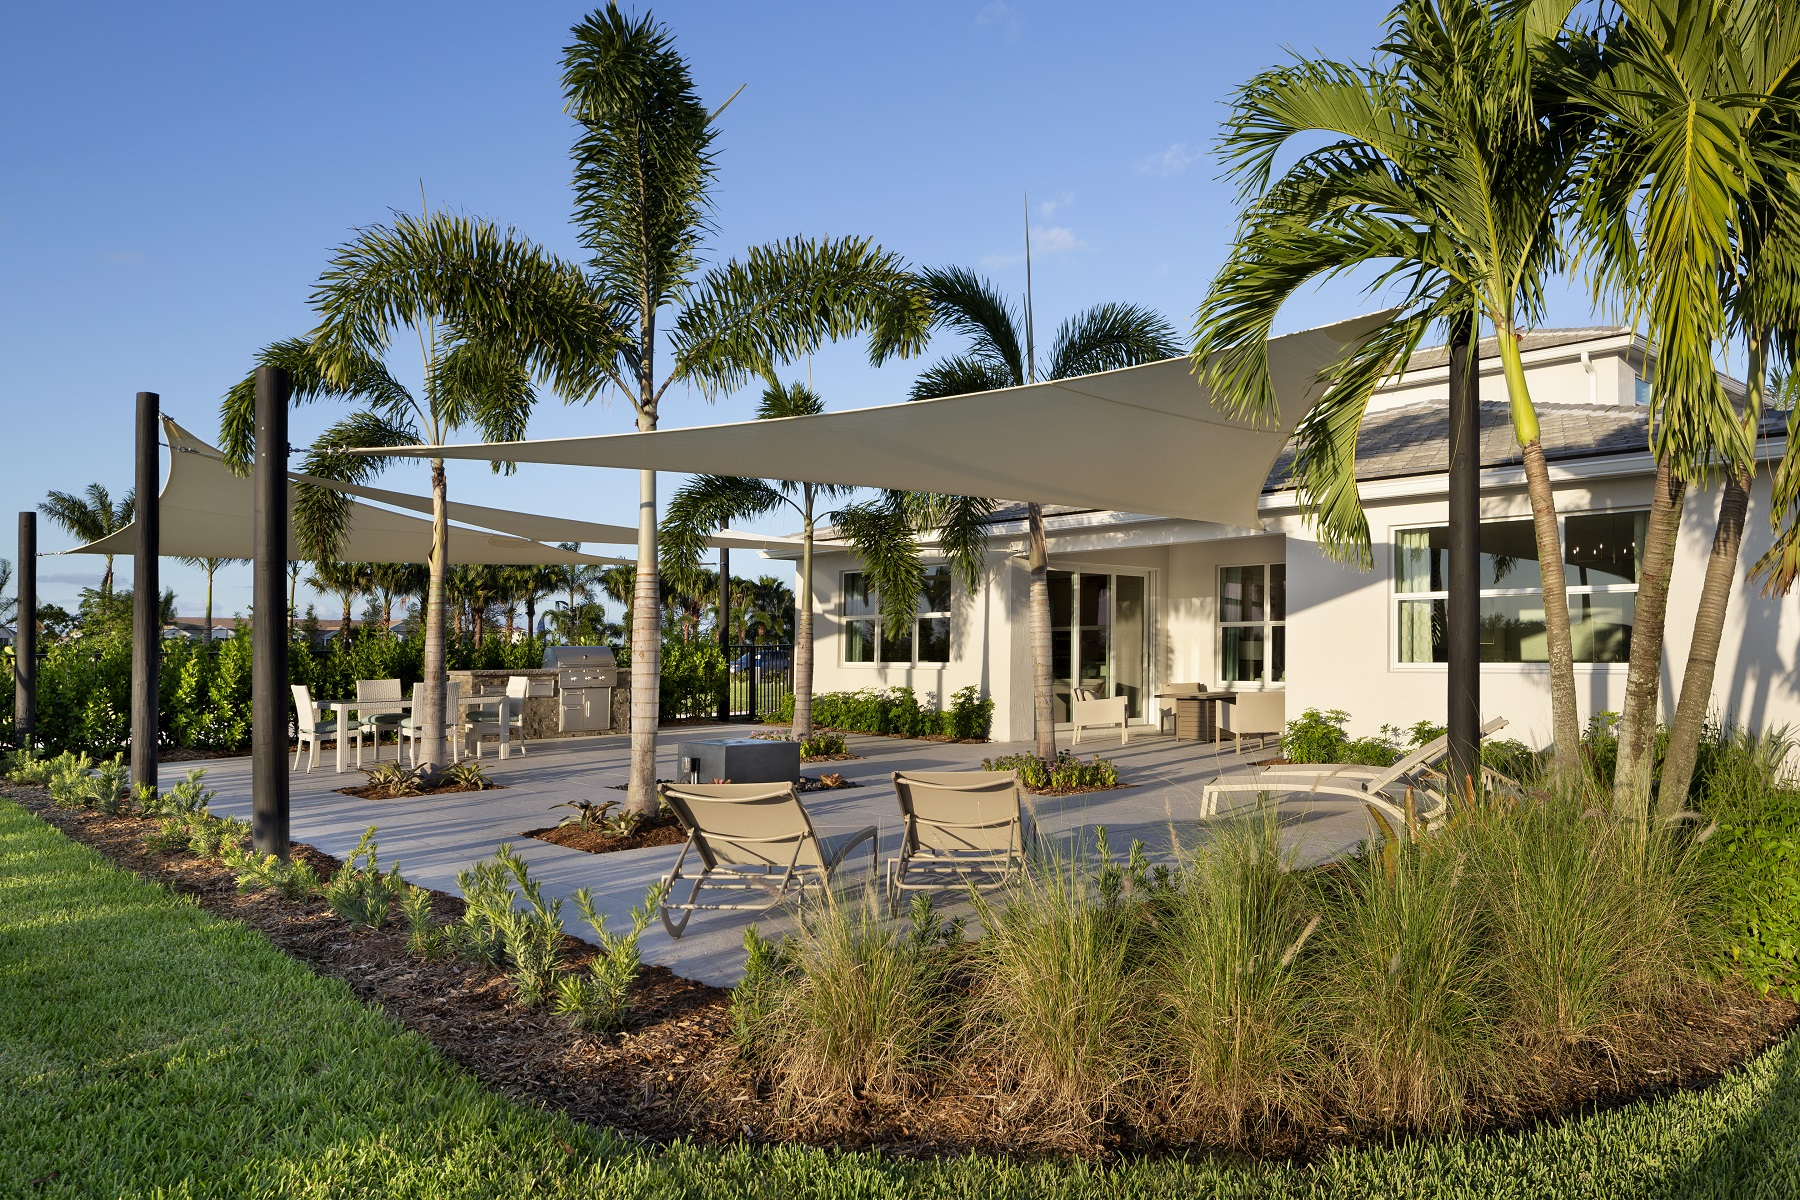 Rowan Plan Exterior Others at Tradition - Manderlie in Port St. Lucie Florida by Mattamy Homes